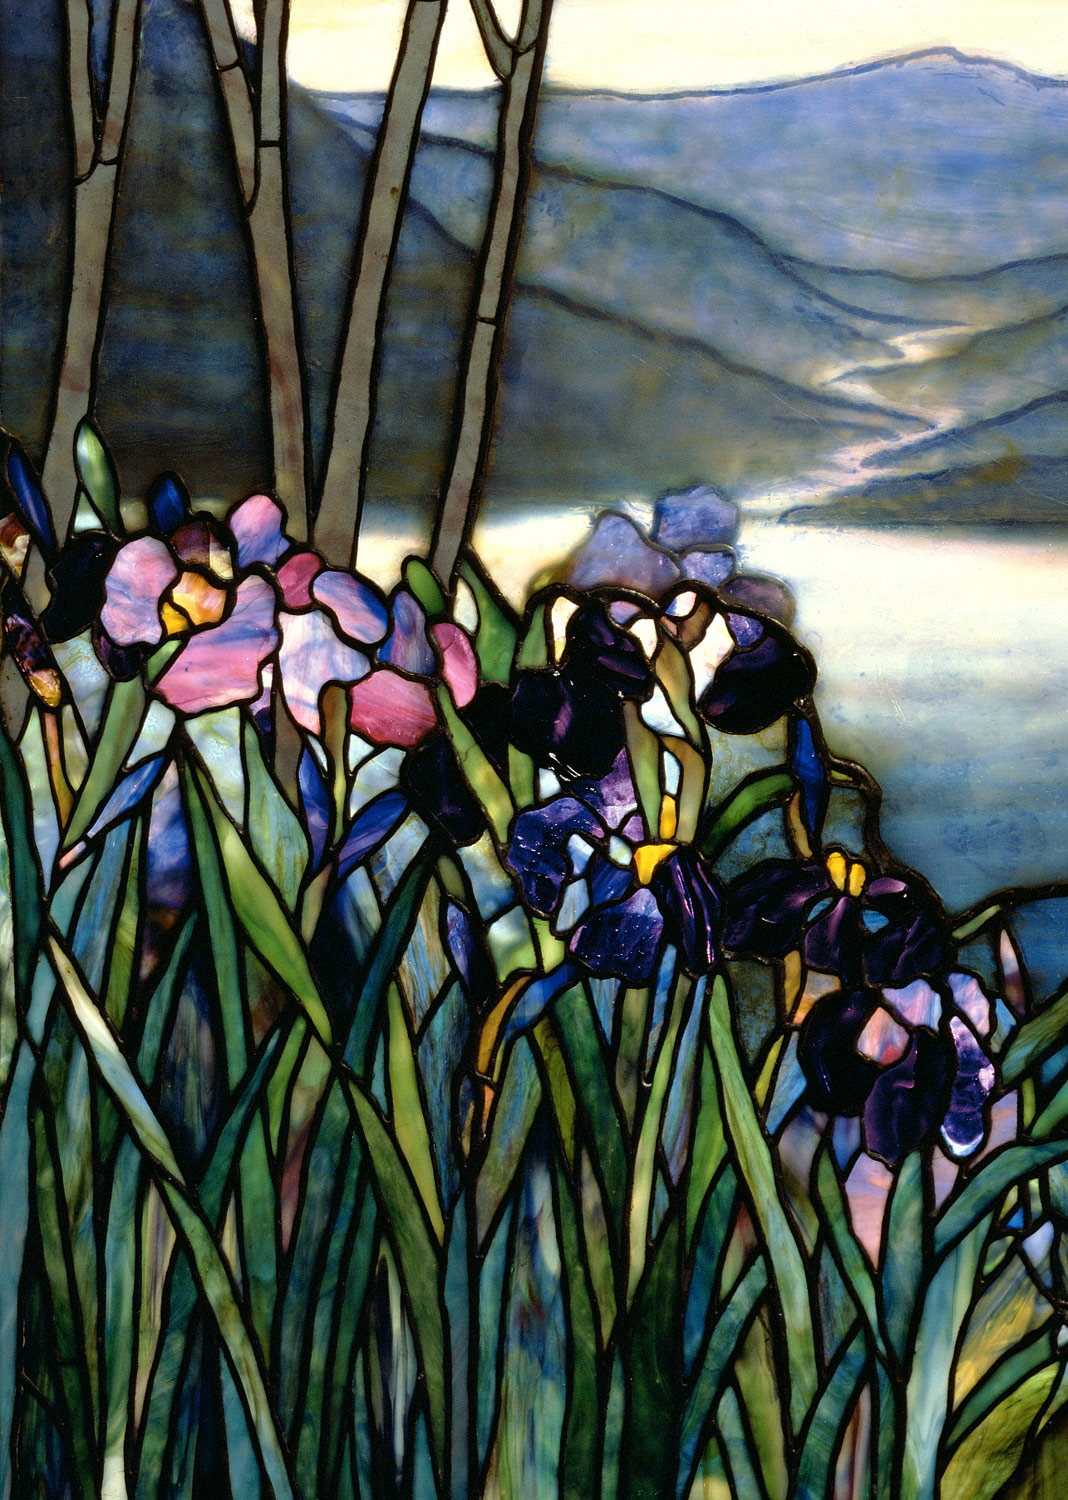 Magnolias and Irises